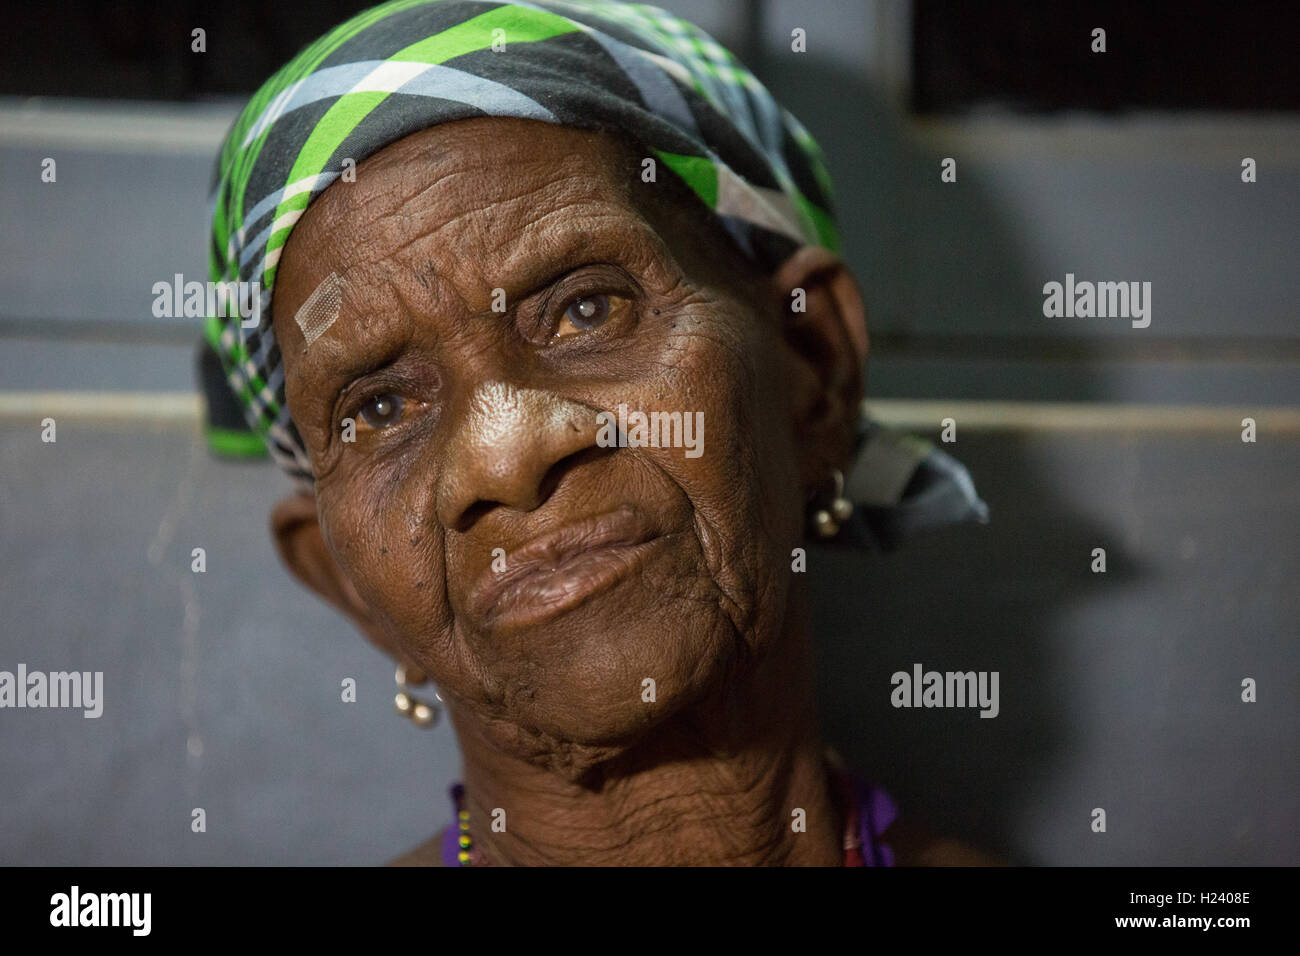 Ribue town, Nampula Province, Mozambique, August 2015: Maria Alihoca from Lalaua has bilateral cateracts. Photo - Stock Image